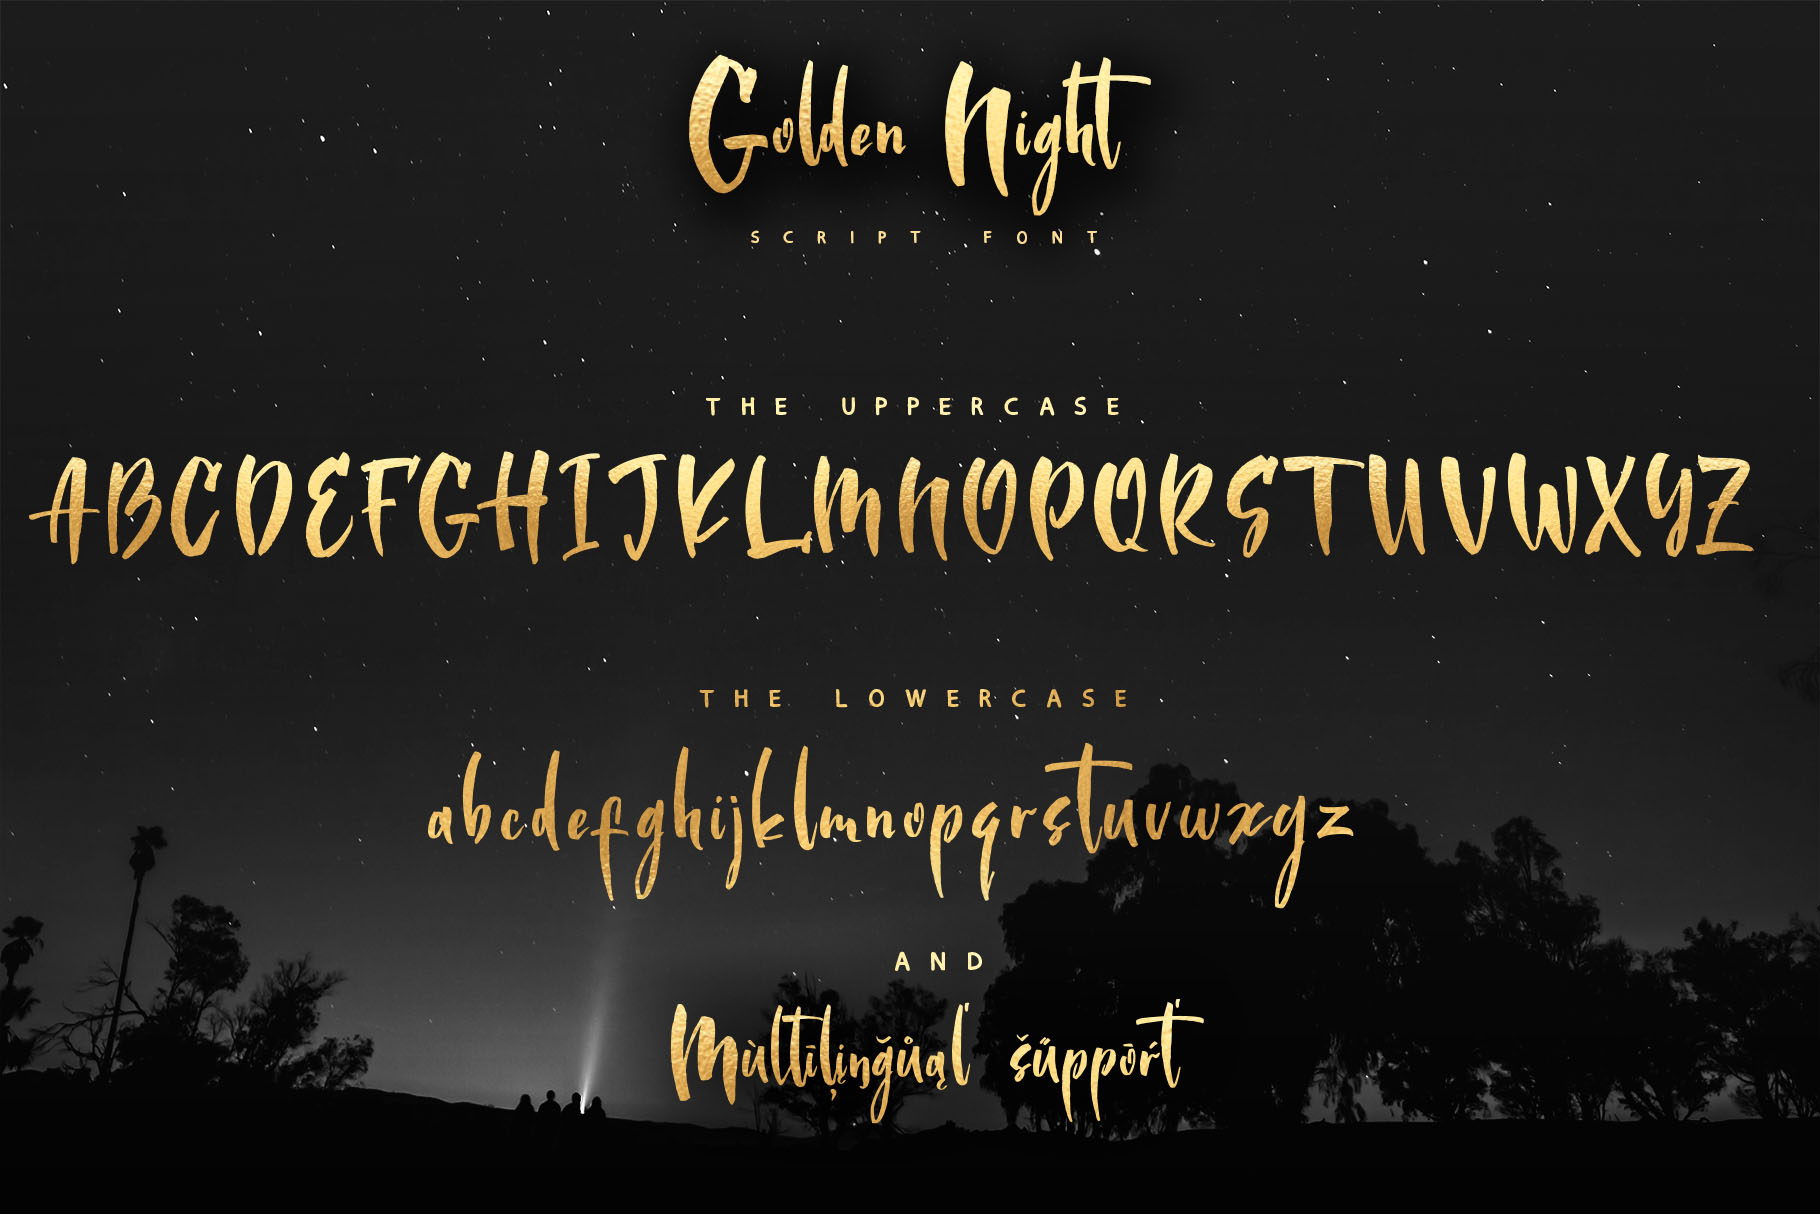 Golden Night script font example image 2